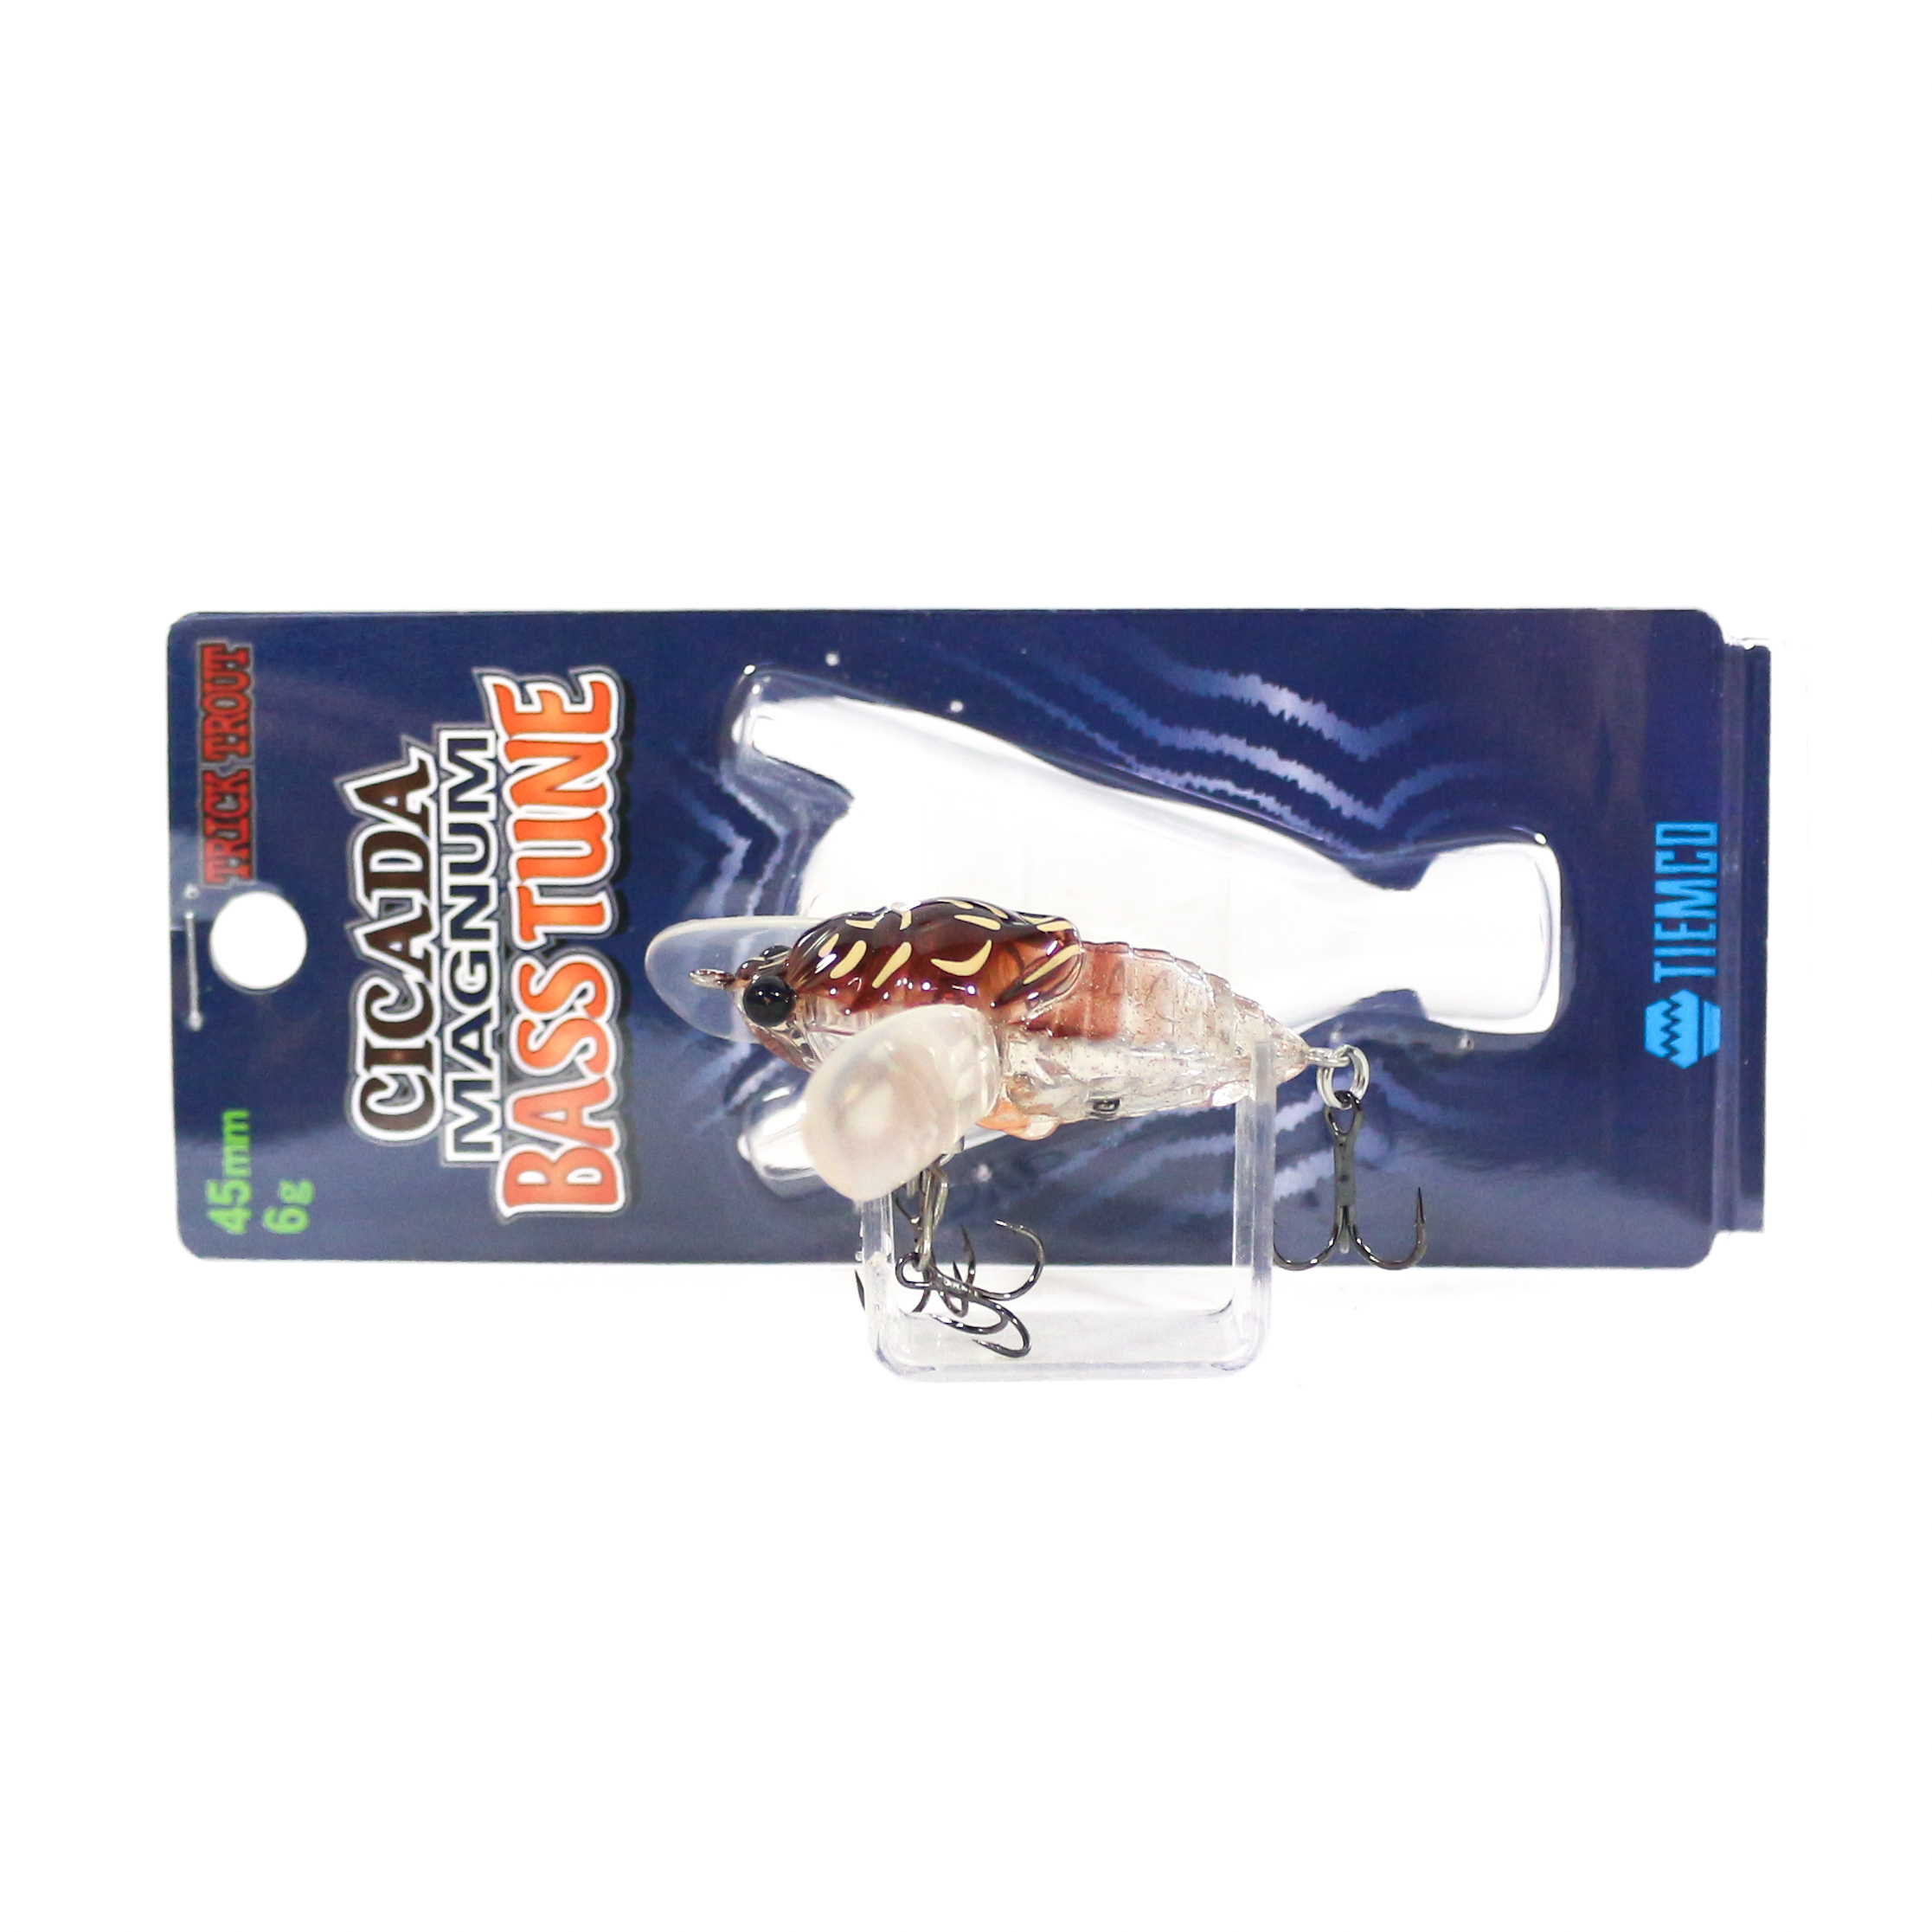 Tiemco Cicada Magnum Bass Tune Floating Lure TTCMG-B-060 (9931)